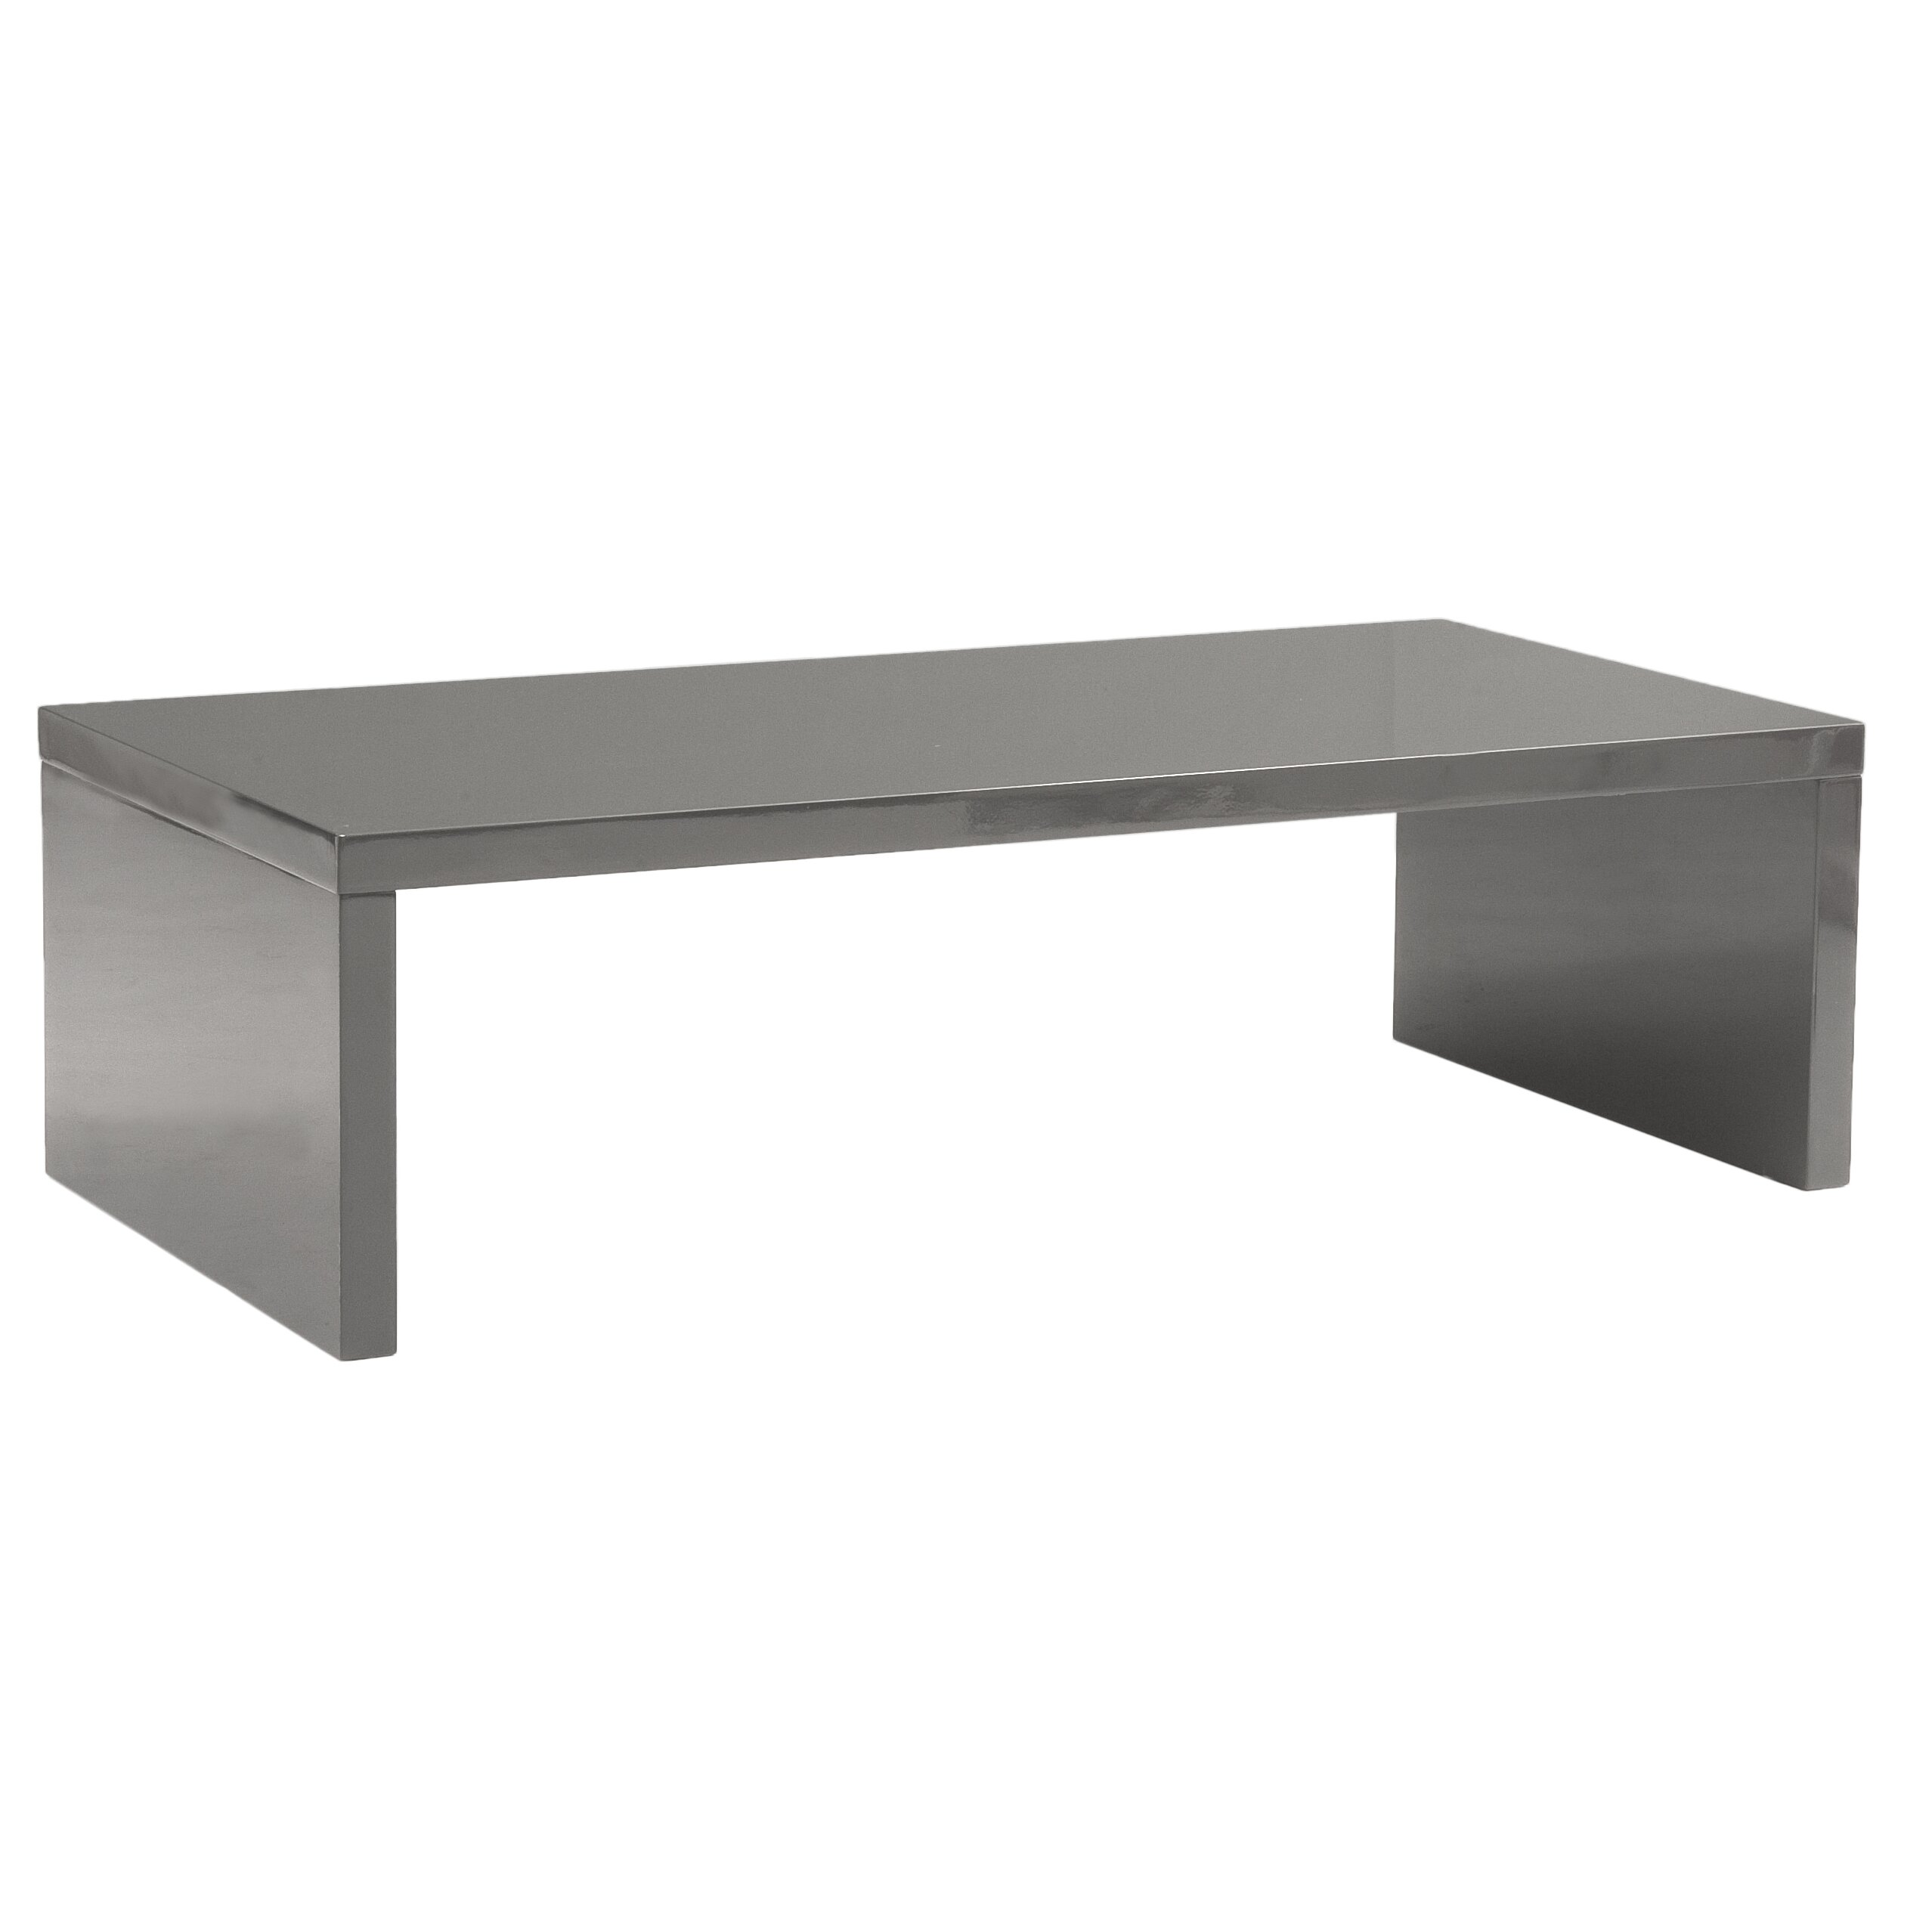 Dwellstudio Morgan Coffee Table Reviews Wayfair